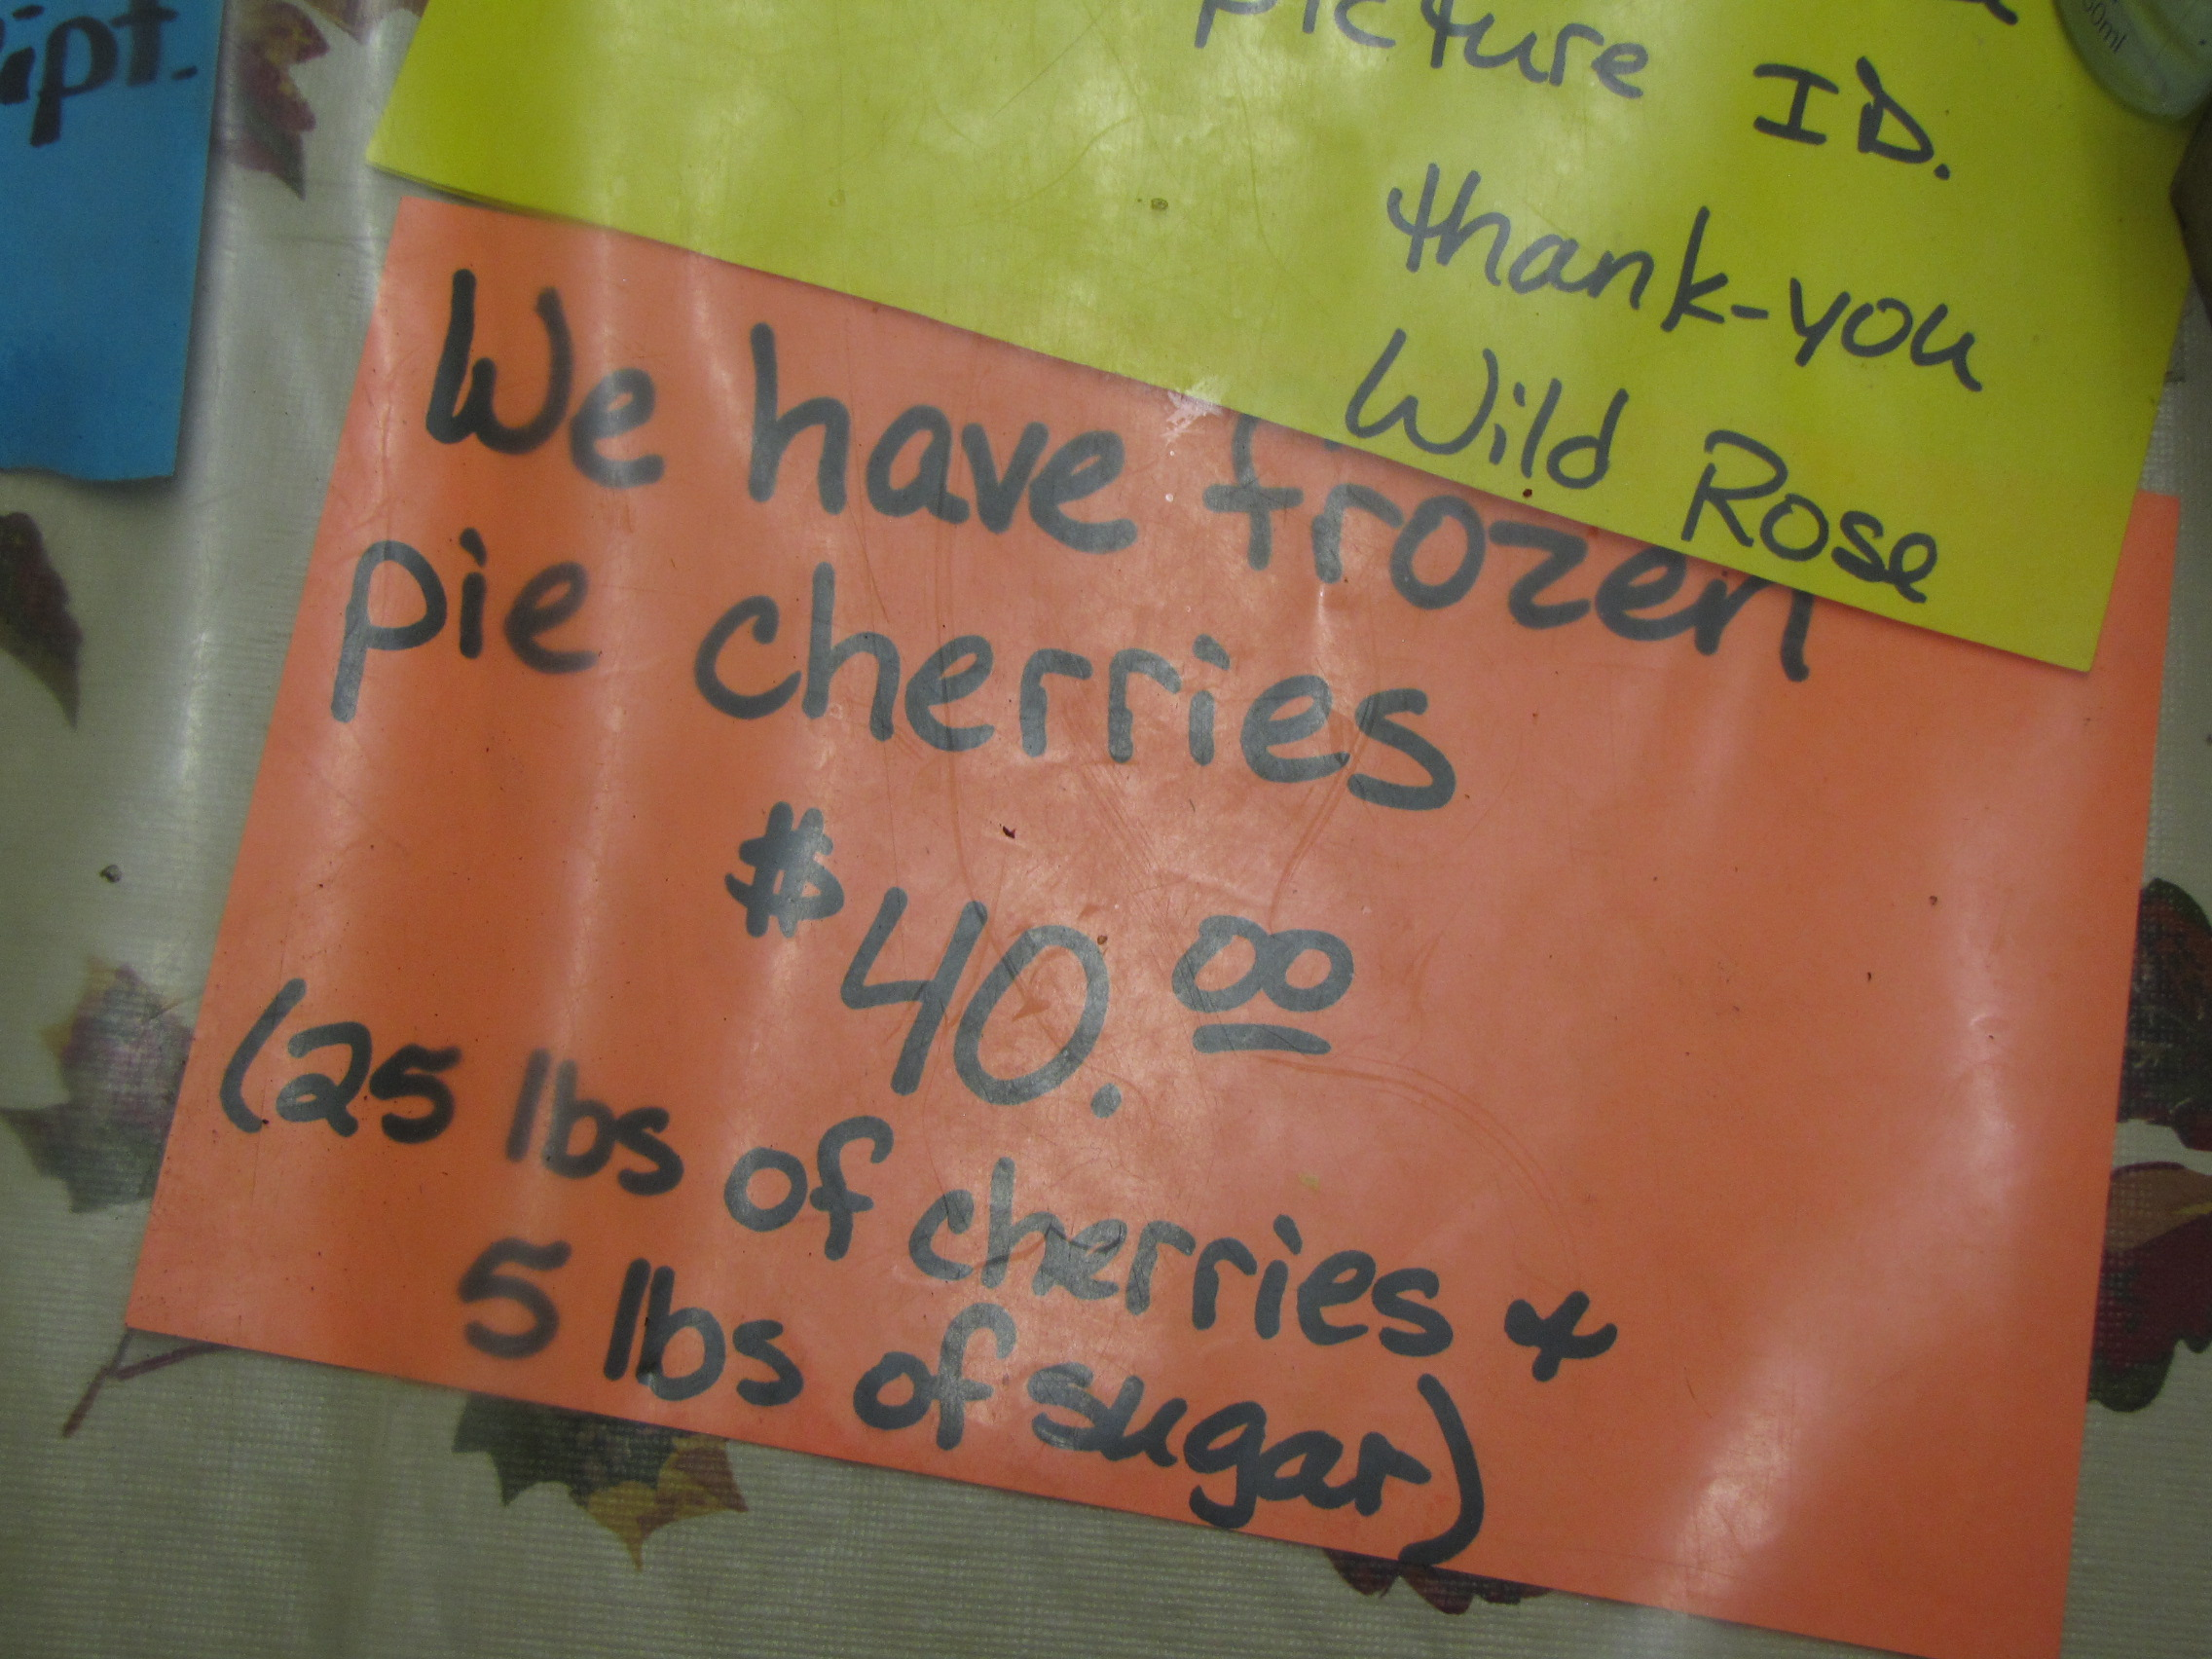 In their freezers, the Wild Rose also stocks local huckleberries and ...